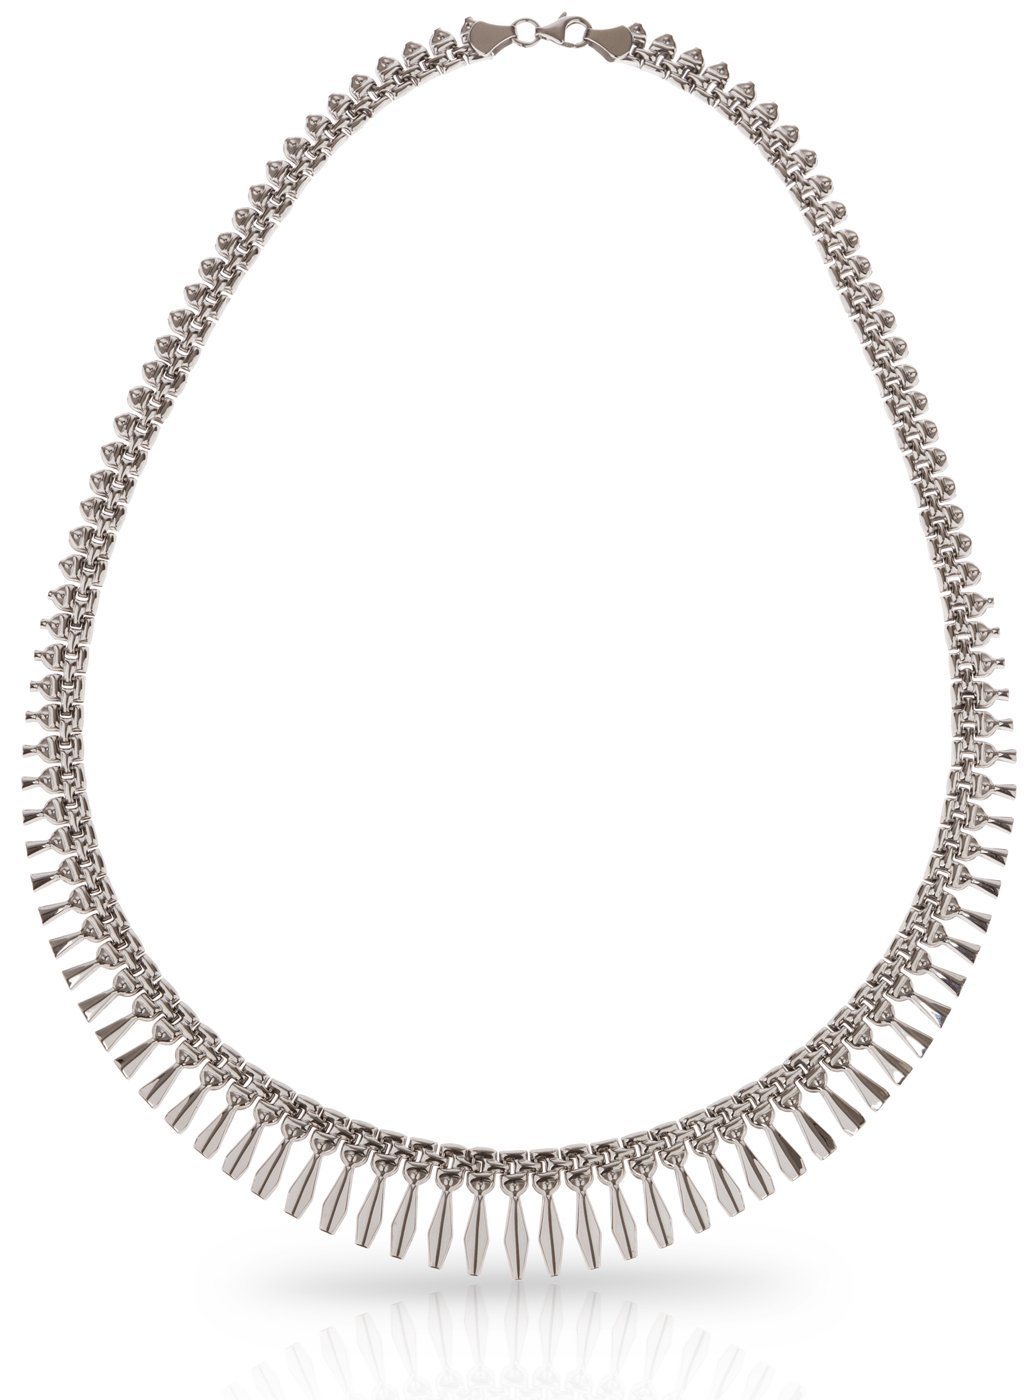 SilverLuxe Sterling Silver Rhodium Plated Graduated Design Bib Style Cleopatra Necklace